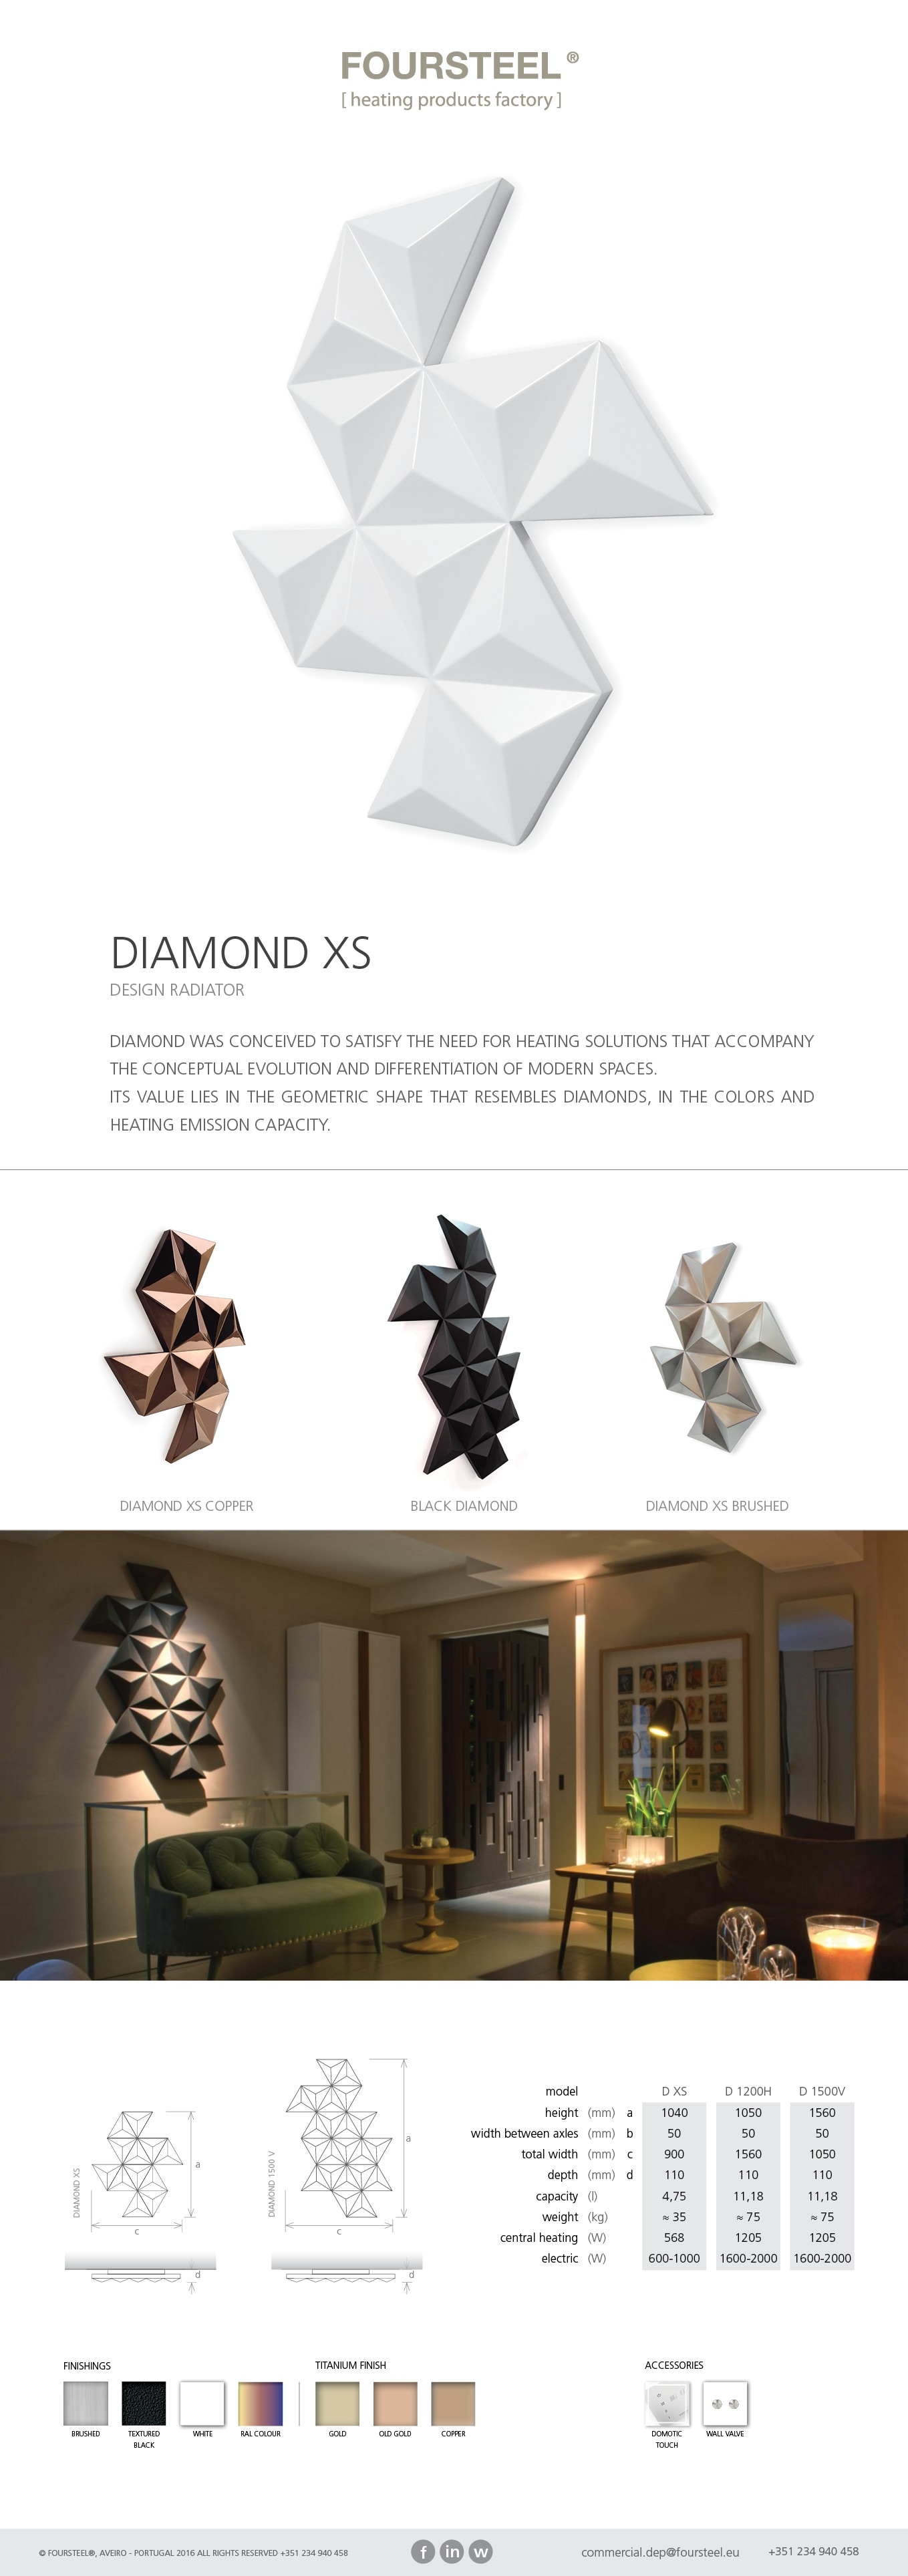 diamond xs  - may 2016